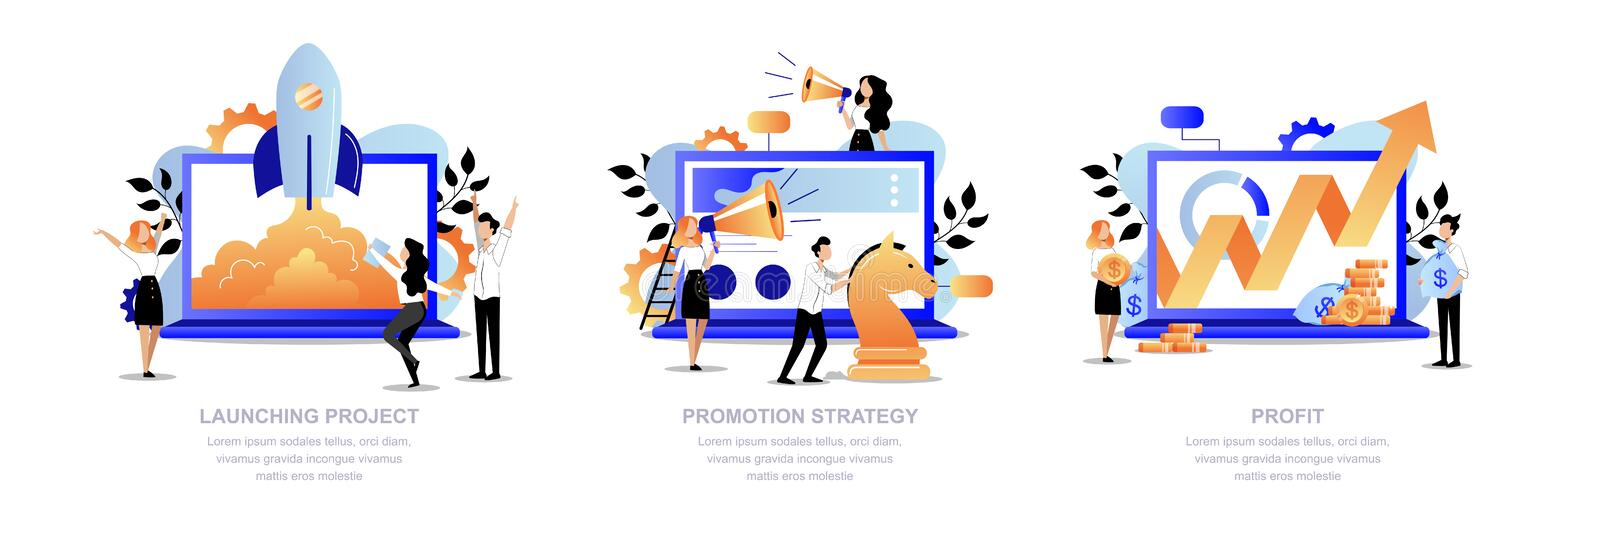 Project promotion, marketing strategy concept. Business team launch startup, promotes, get profit. Vector illustration vector illustration